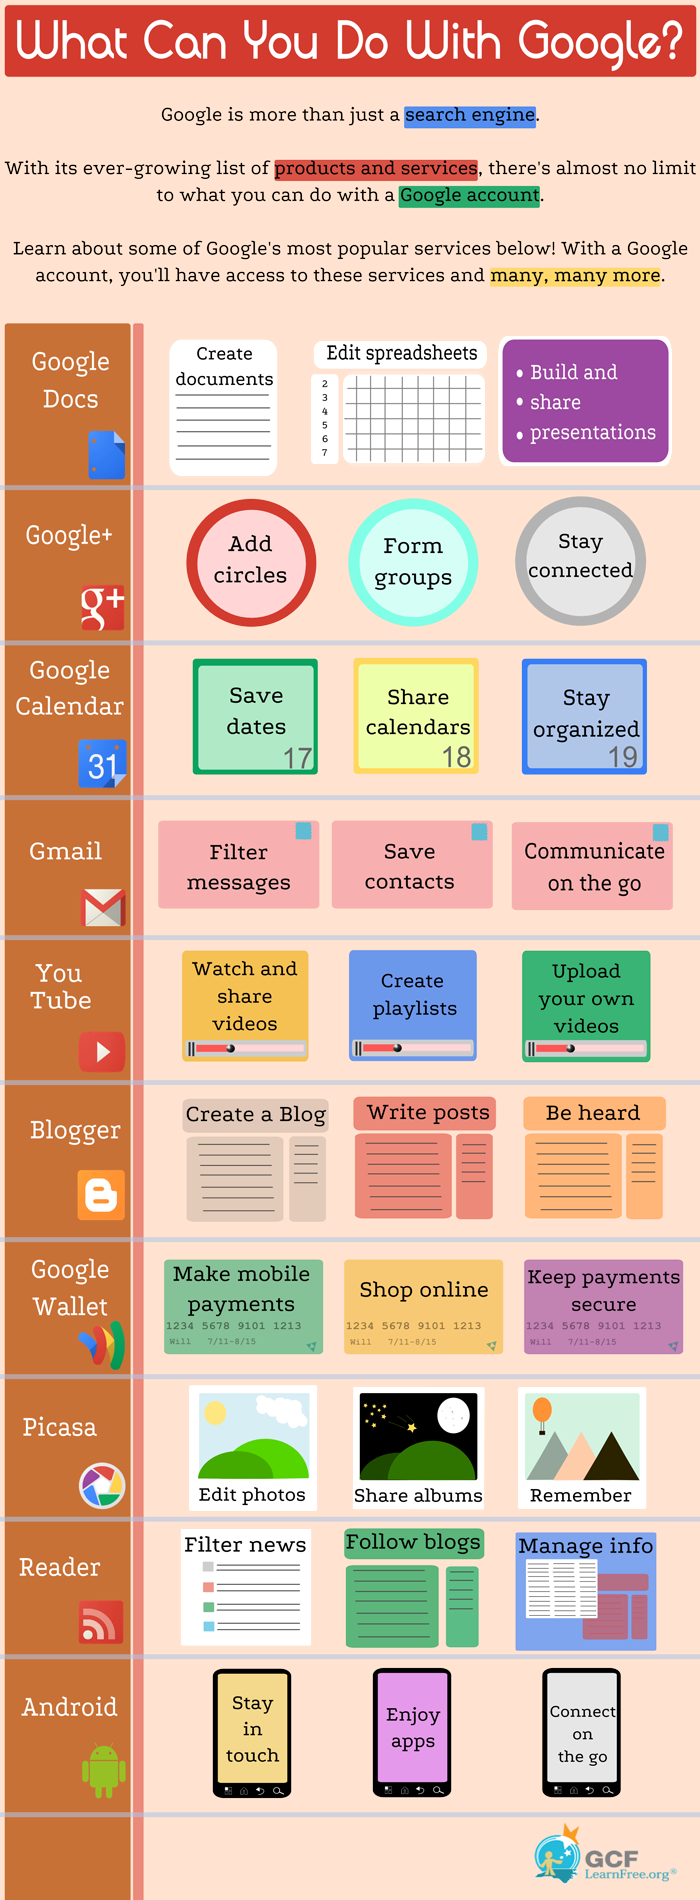 30 Simple Ways You Should Be Using Google. So useful! I am always forgetting how much google can actually do. For those days when I'm in a hurry or don't feel like sifting through the web to find a new tool, I'll just use google for the basics. And the neat thing is that I know it is a safe resource to introduce to my students as well.